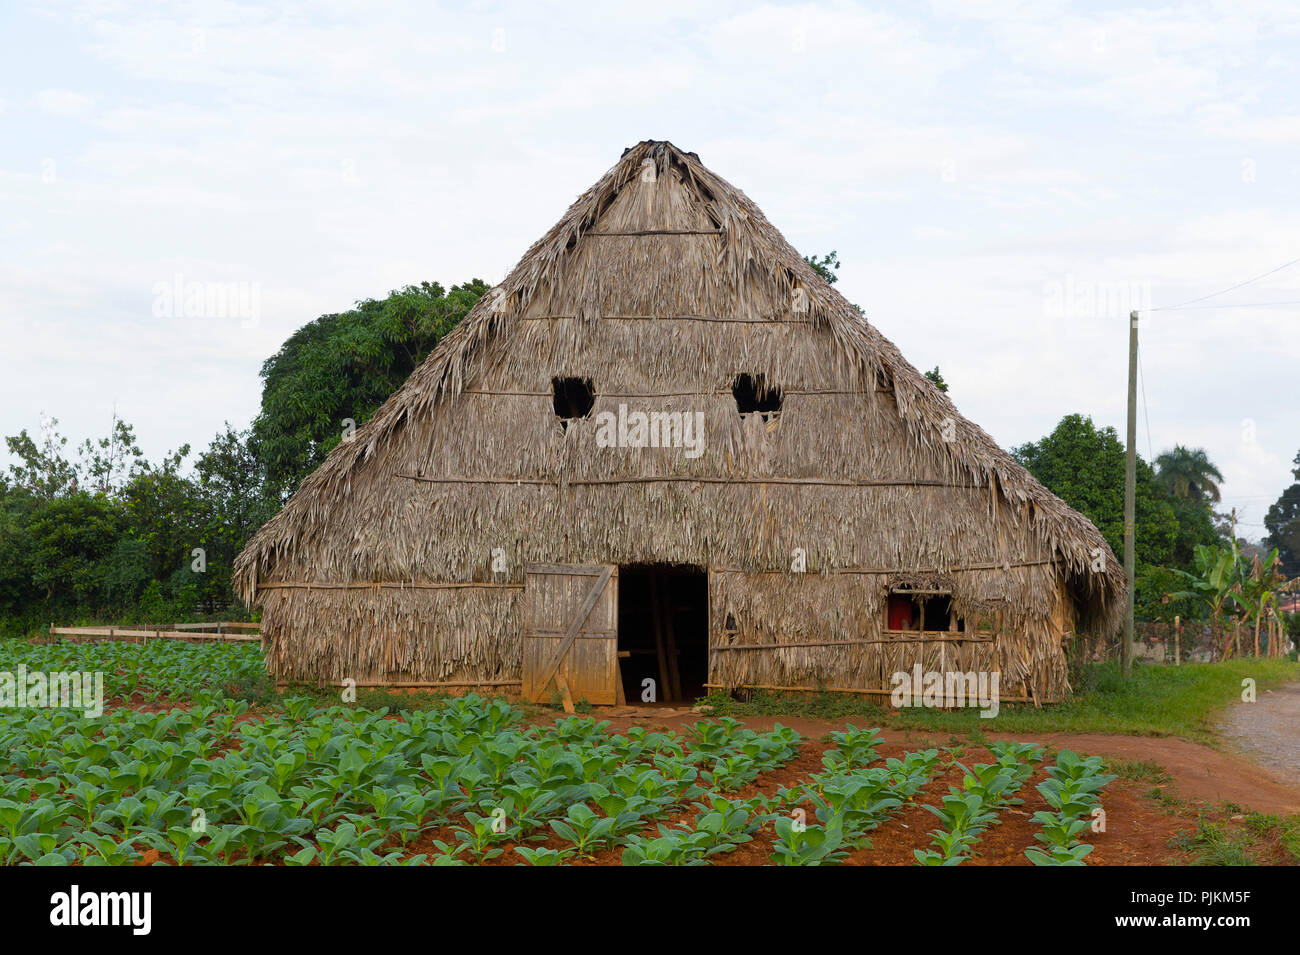 Shed for drying tobacco leaves, tobacco farm, Vinales Valley, Province of Pinar del Rio, Cuba, Republic of Cuba, Greater Antilles, Caribbean Sea - Stock Image